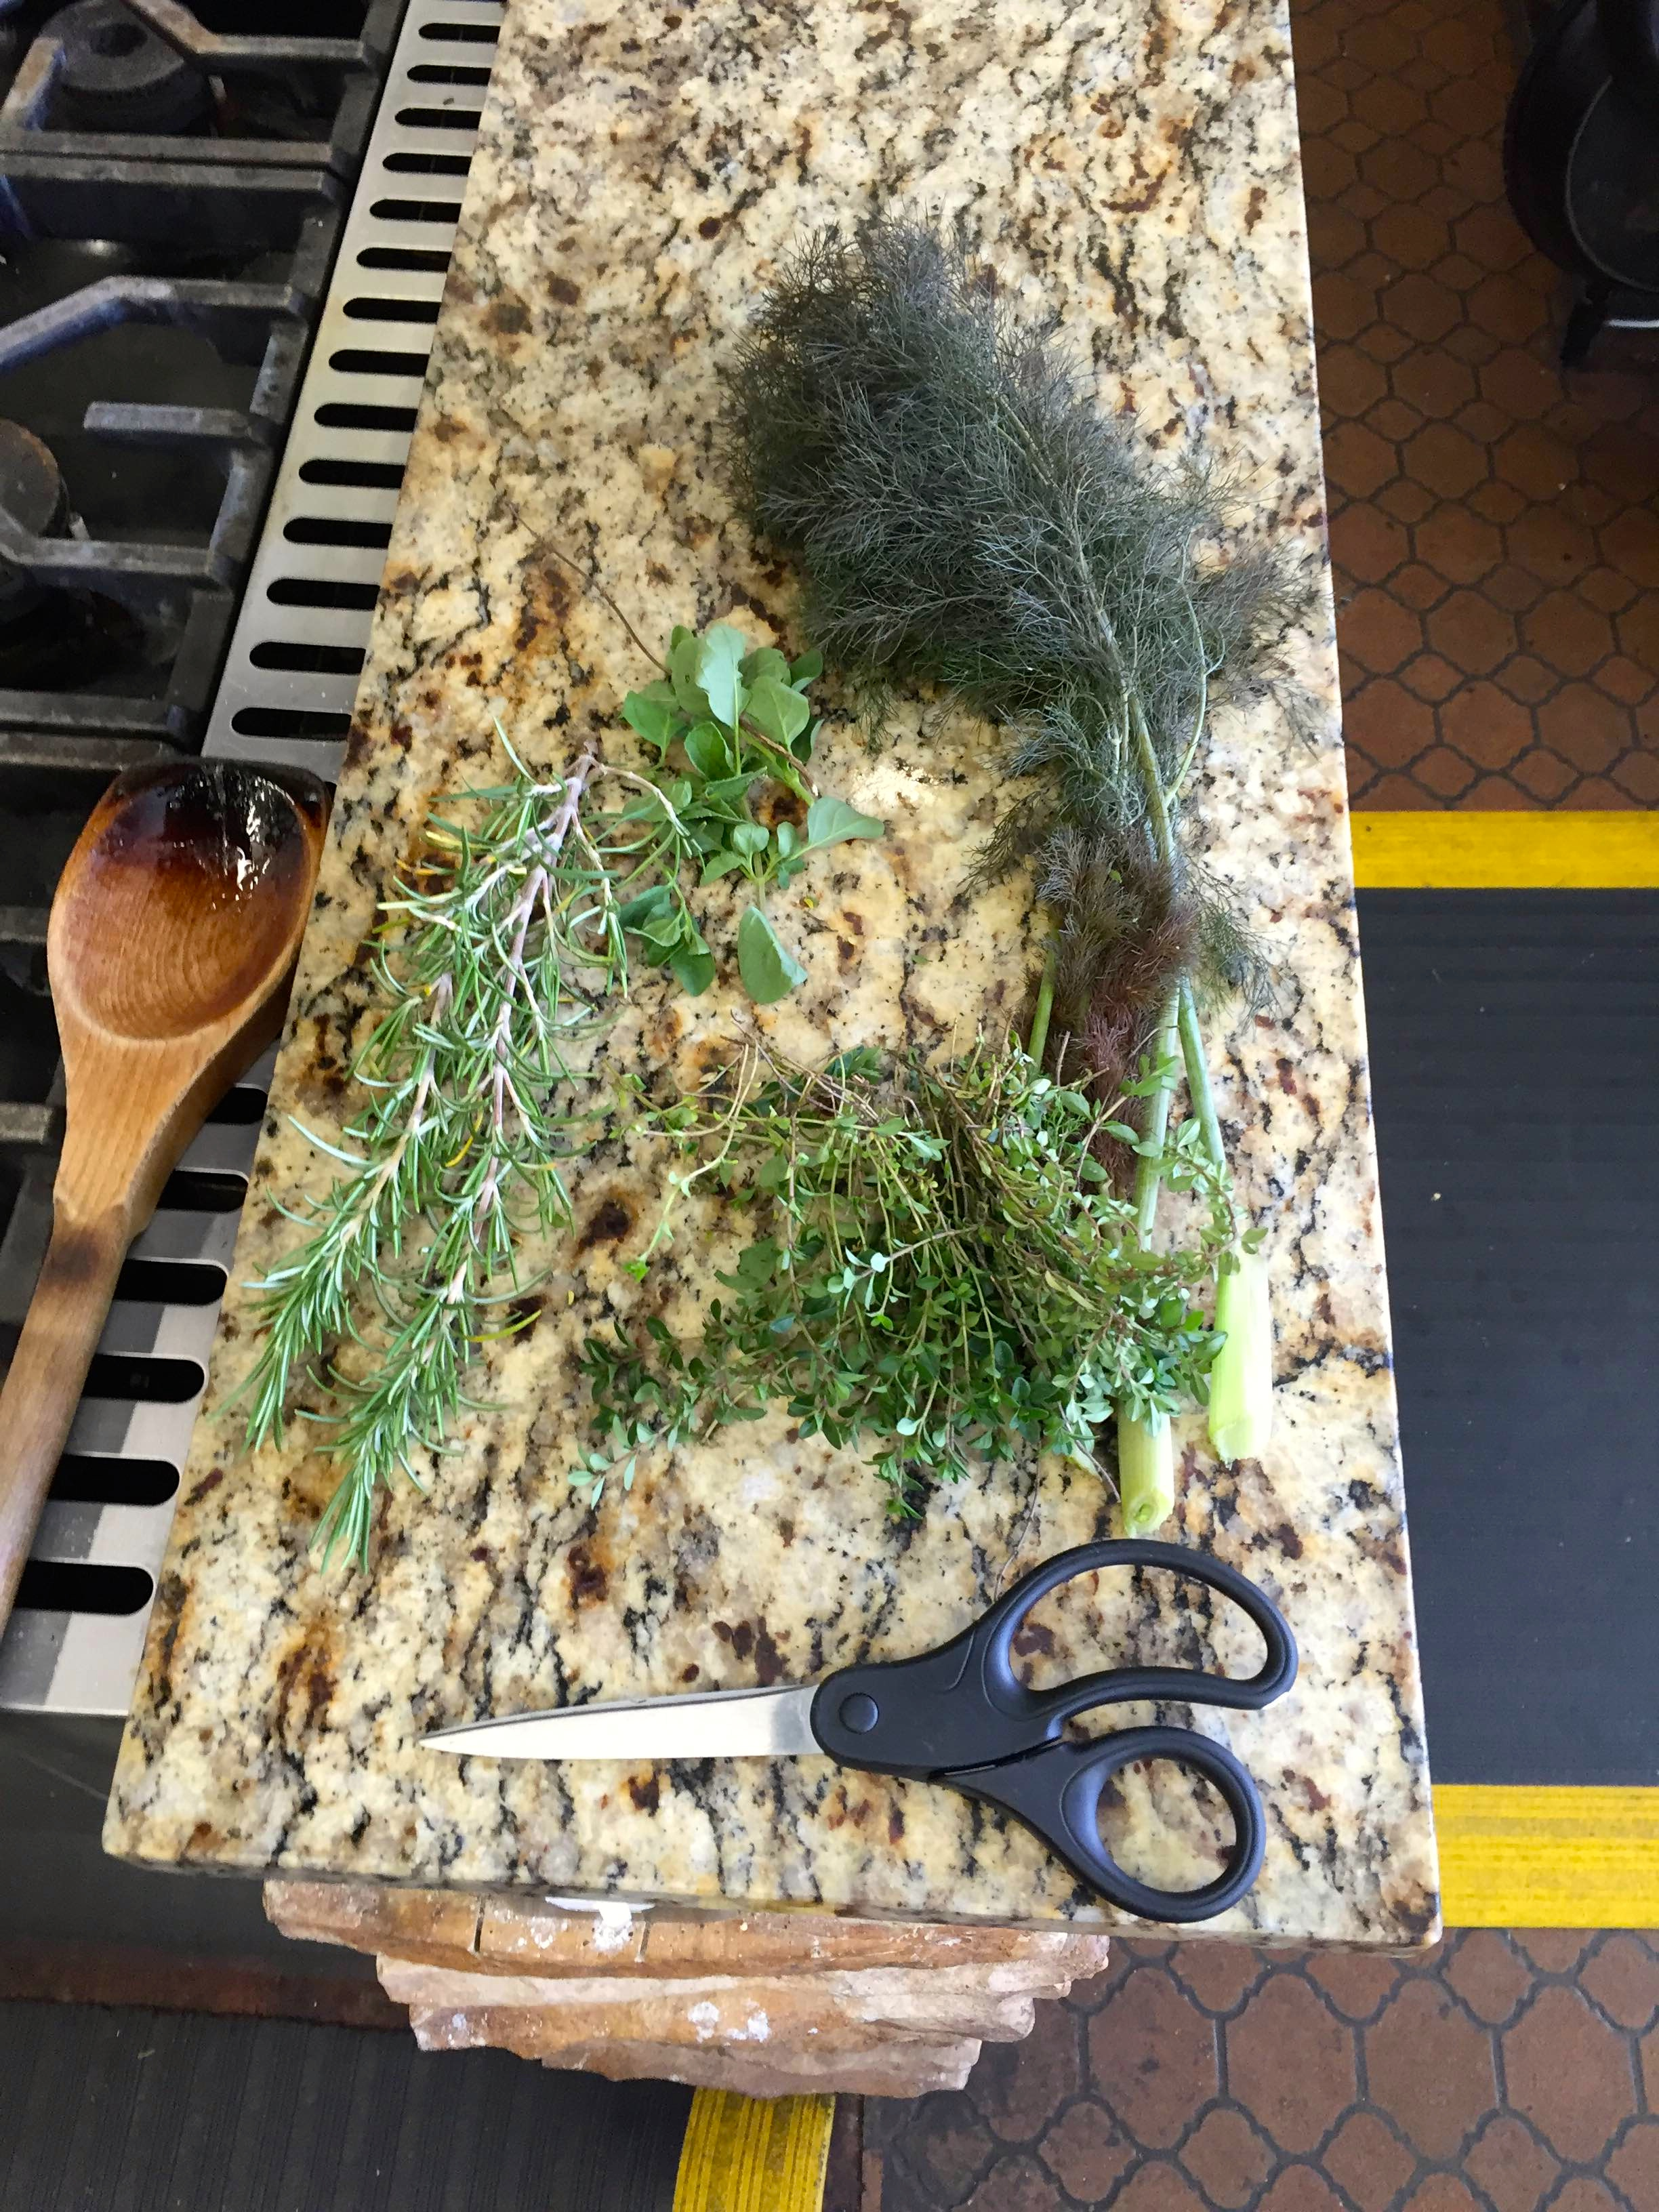 Herbs pulled from TNFP's kitchen garden will go into the dish.